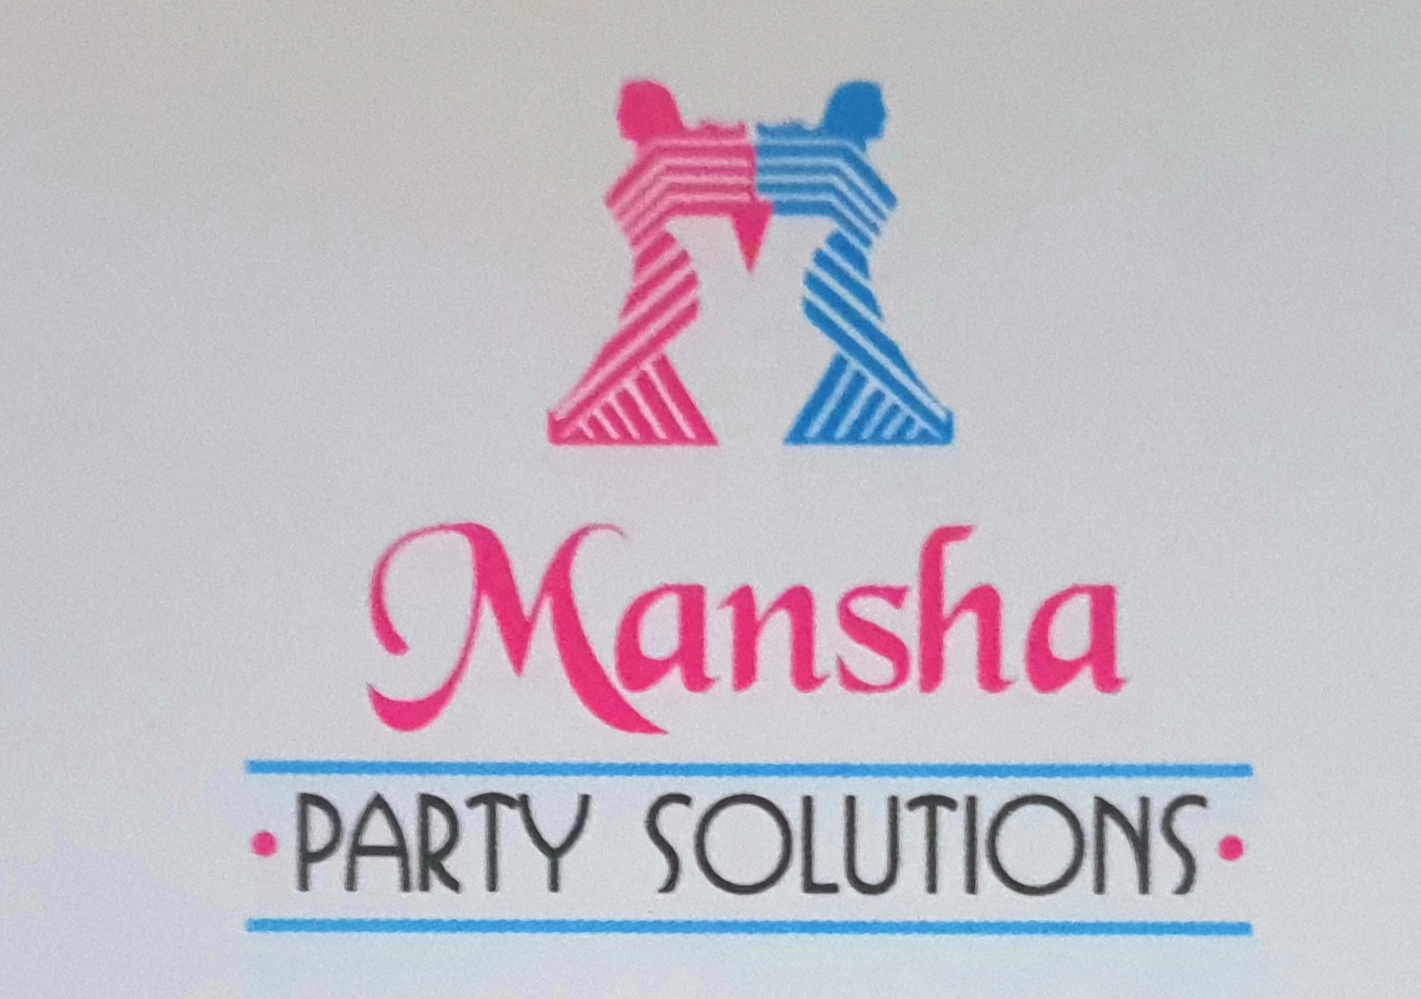 MANSHA PARTY SOLUTION